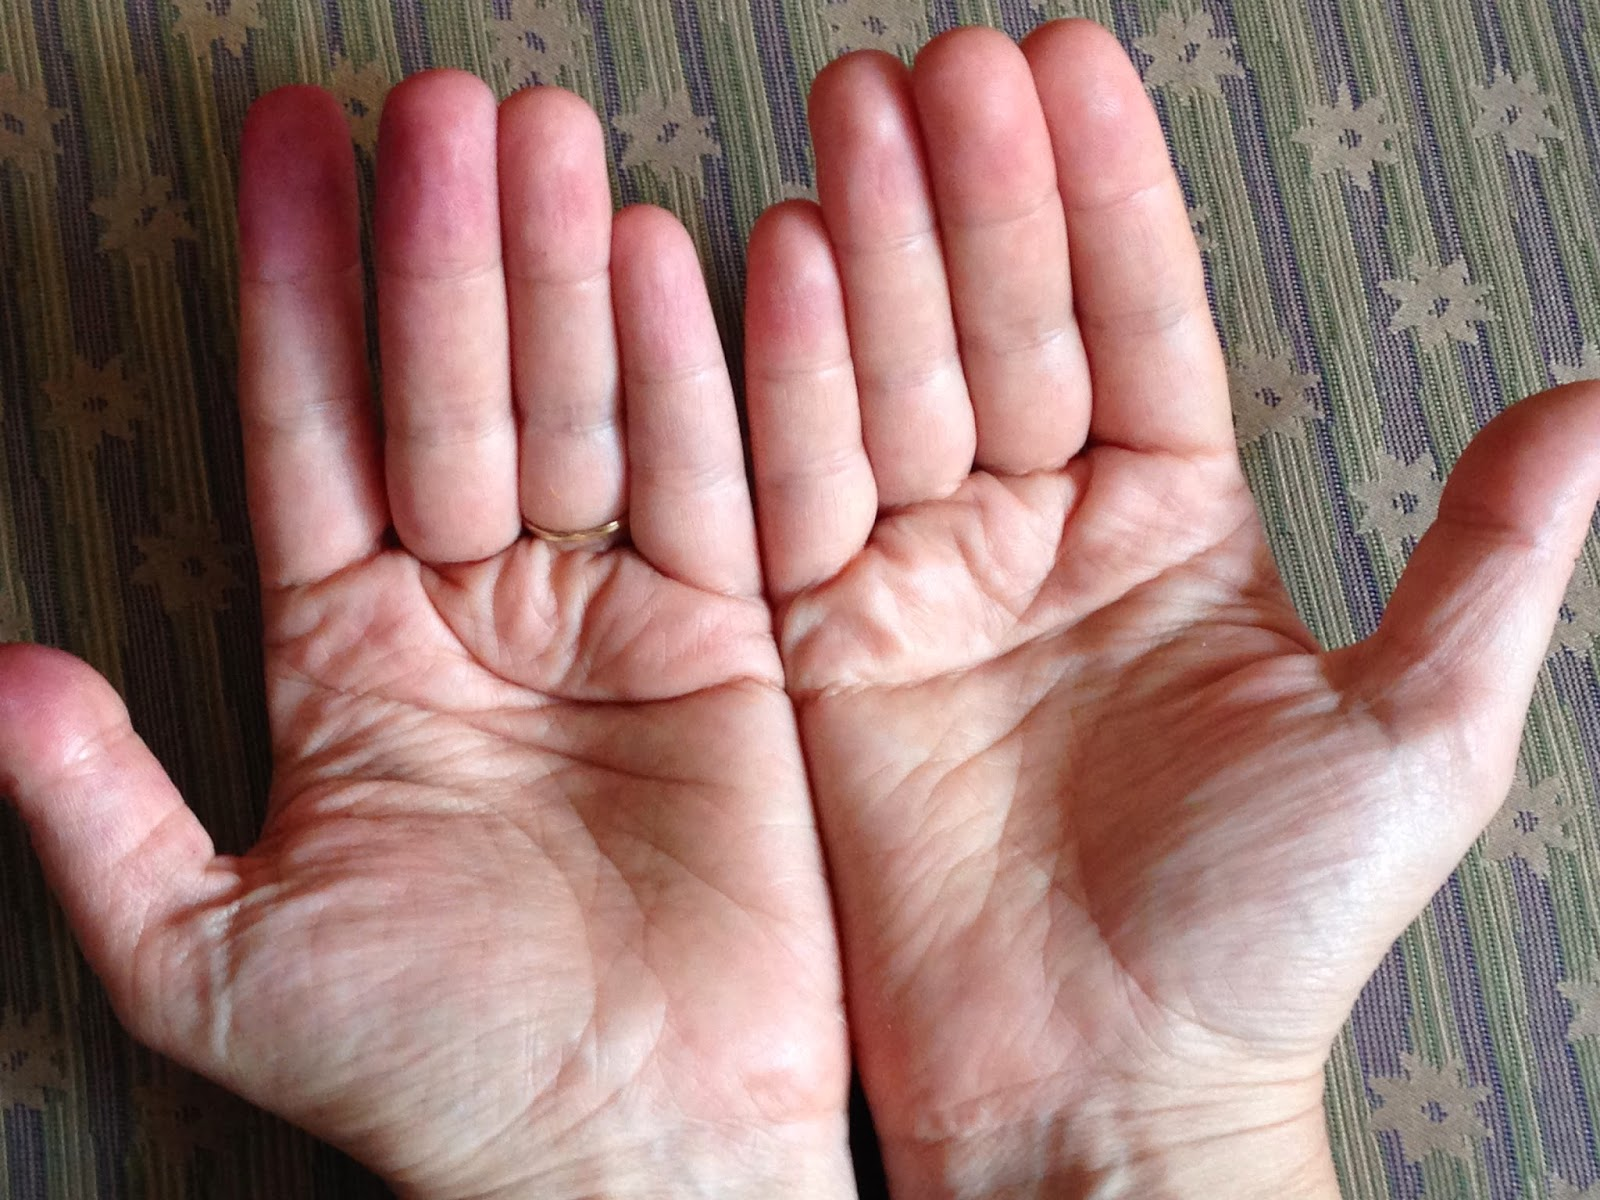 Zoom Times: The Simian Crease Vs. The Hand of Power